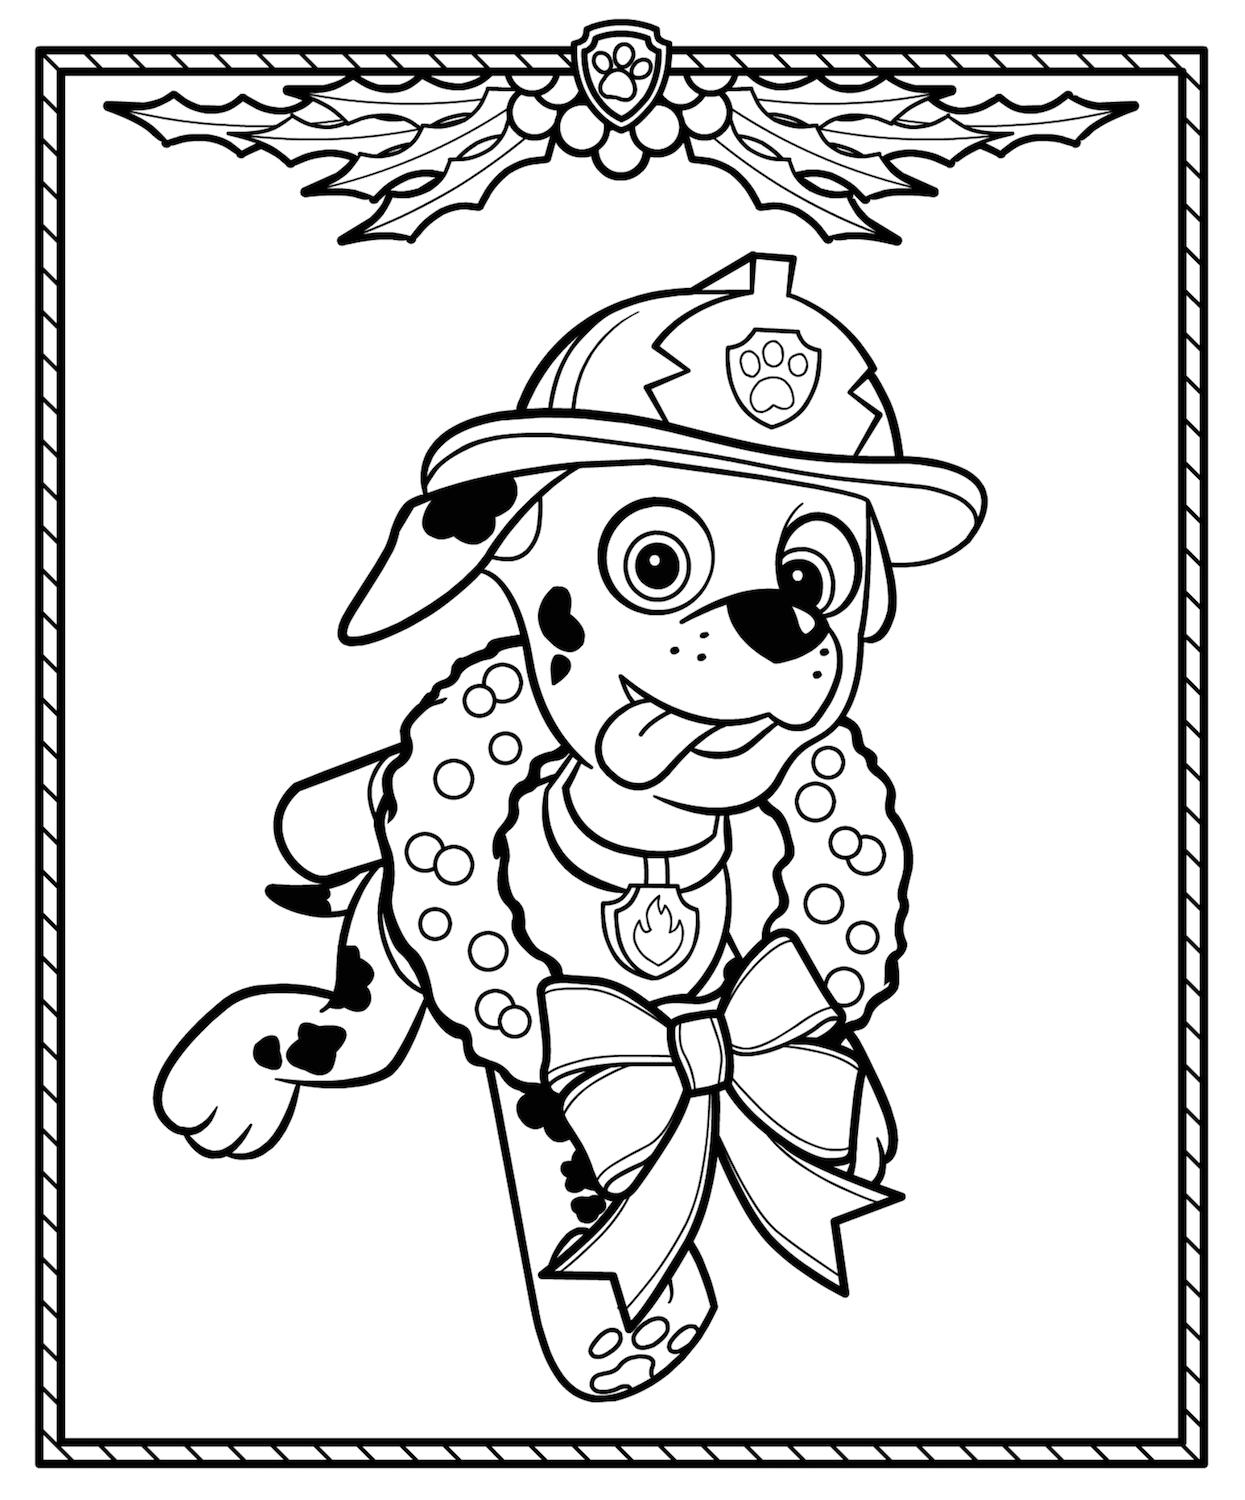 Lots of FREE Christmas Coloring Pages for Kids, including